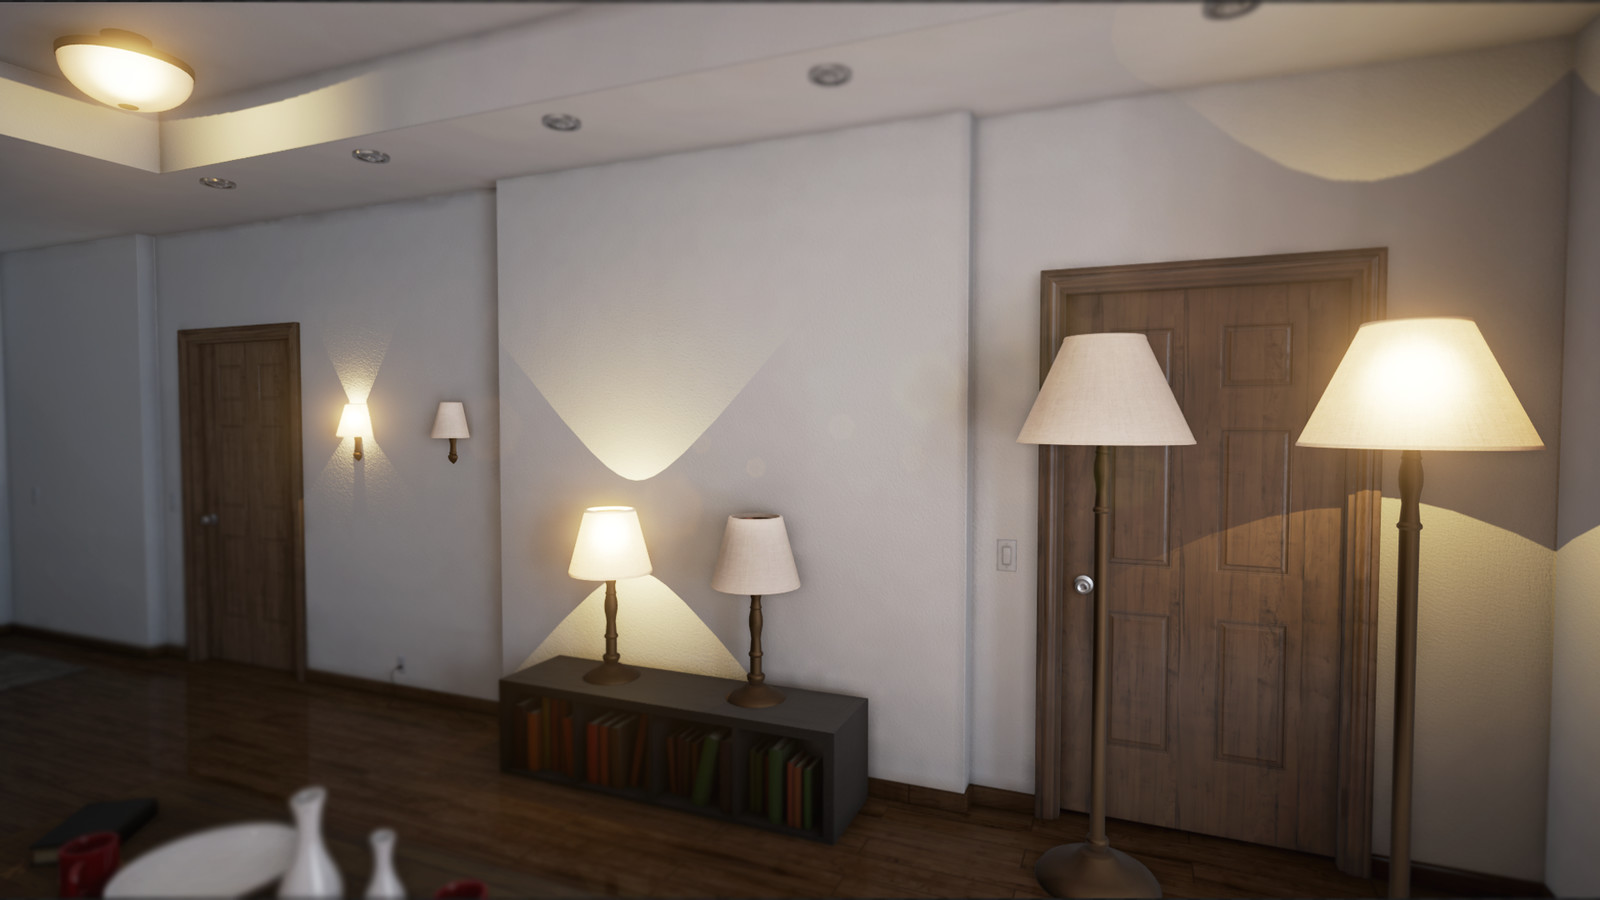 More shots from within the realistic rendering demo in Unreal